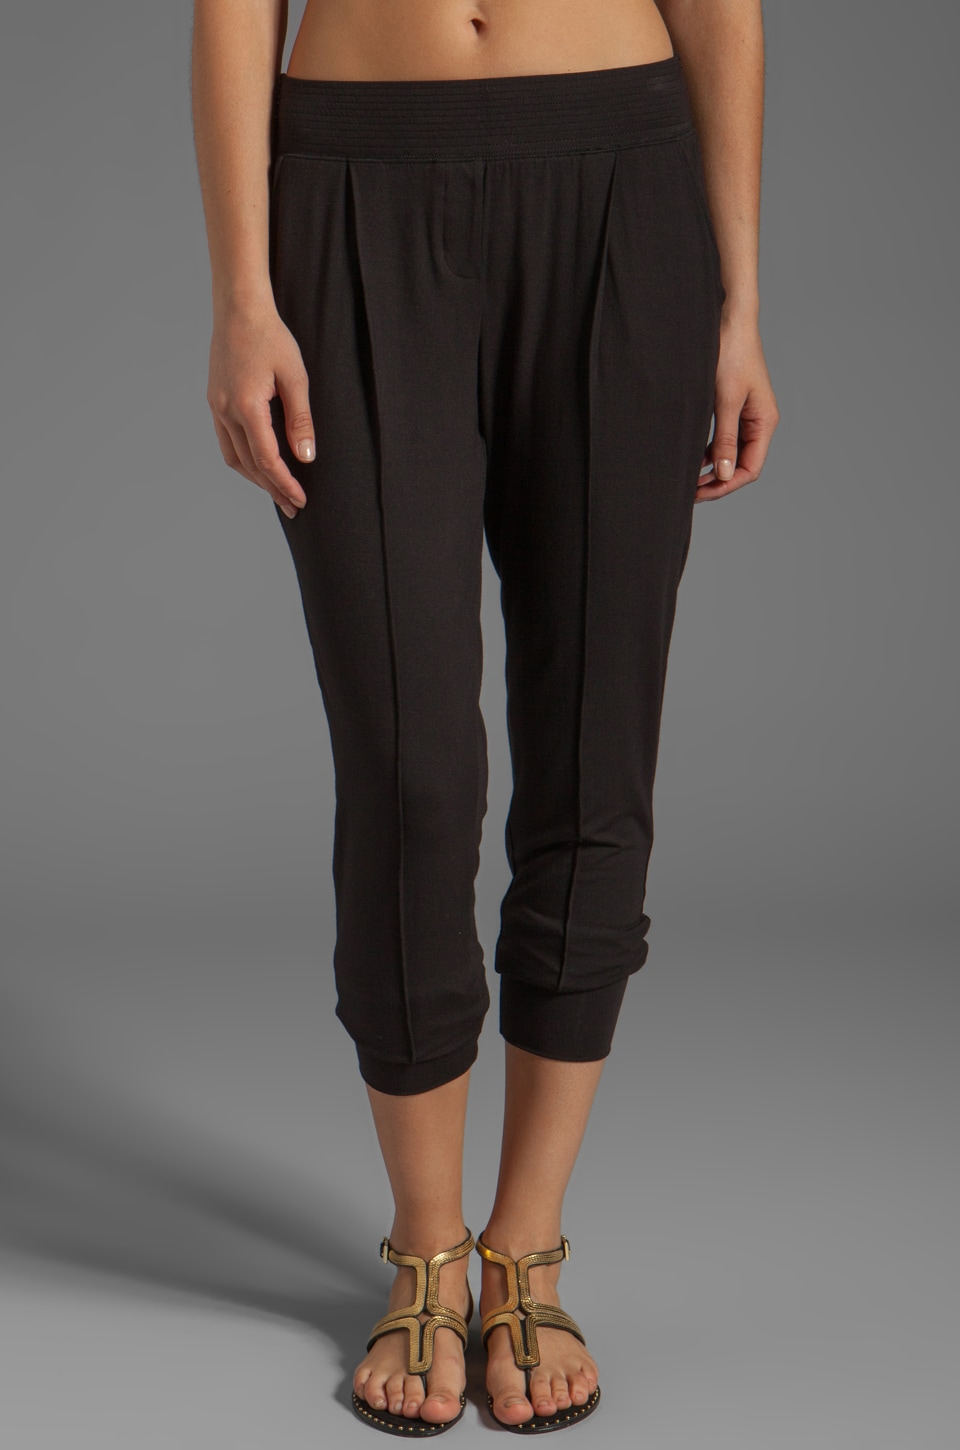 Heather Pintuck Pant in Black